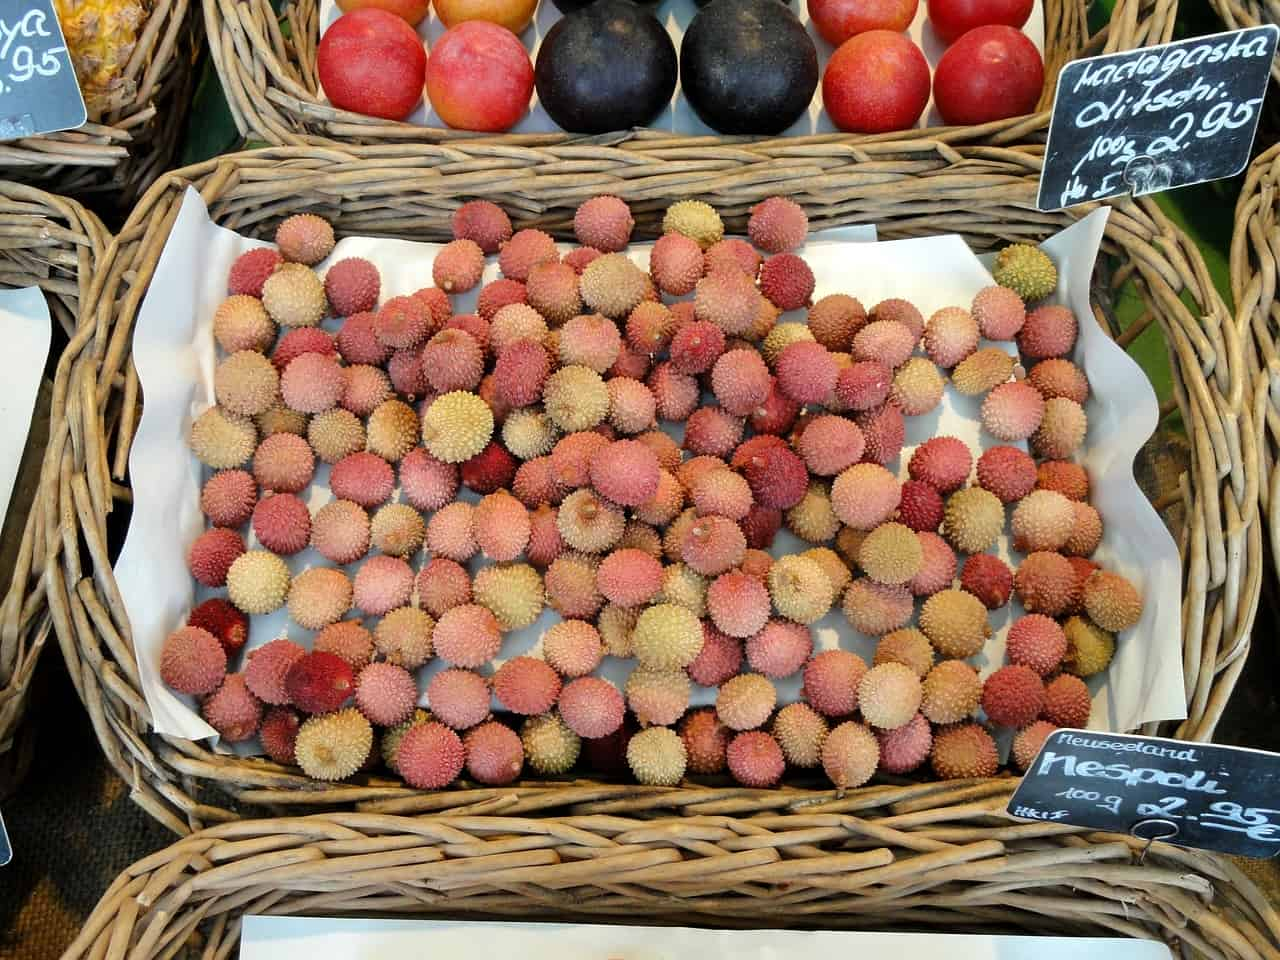 lychees-613115_1280